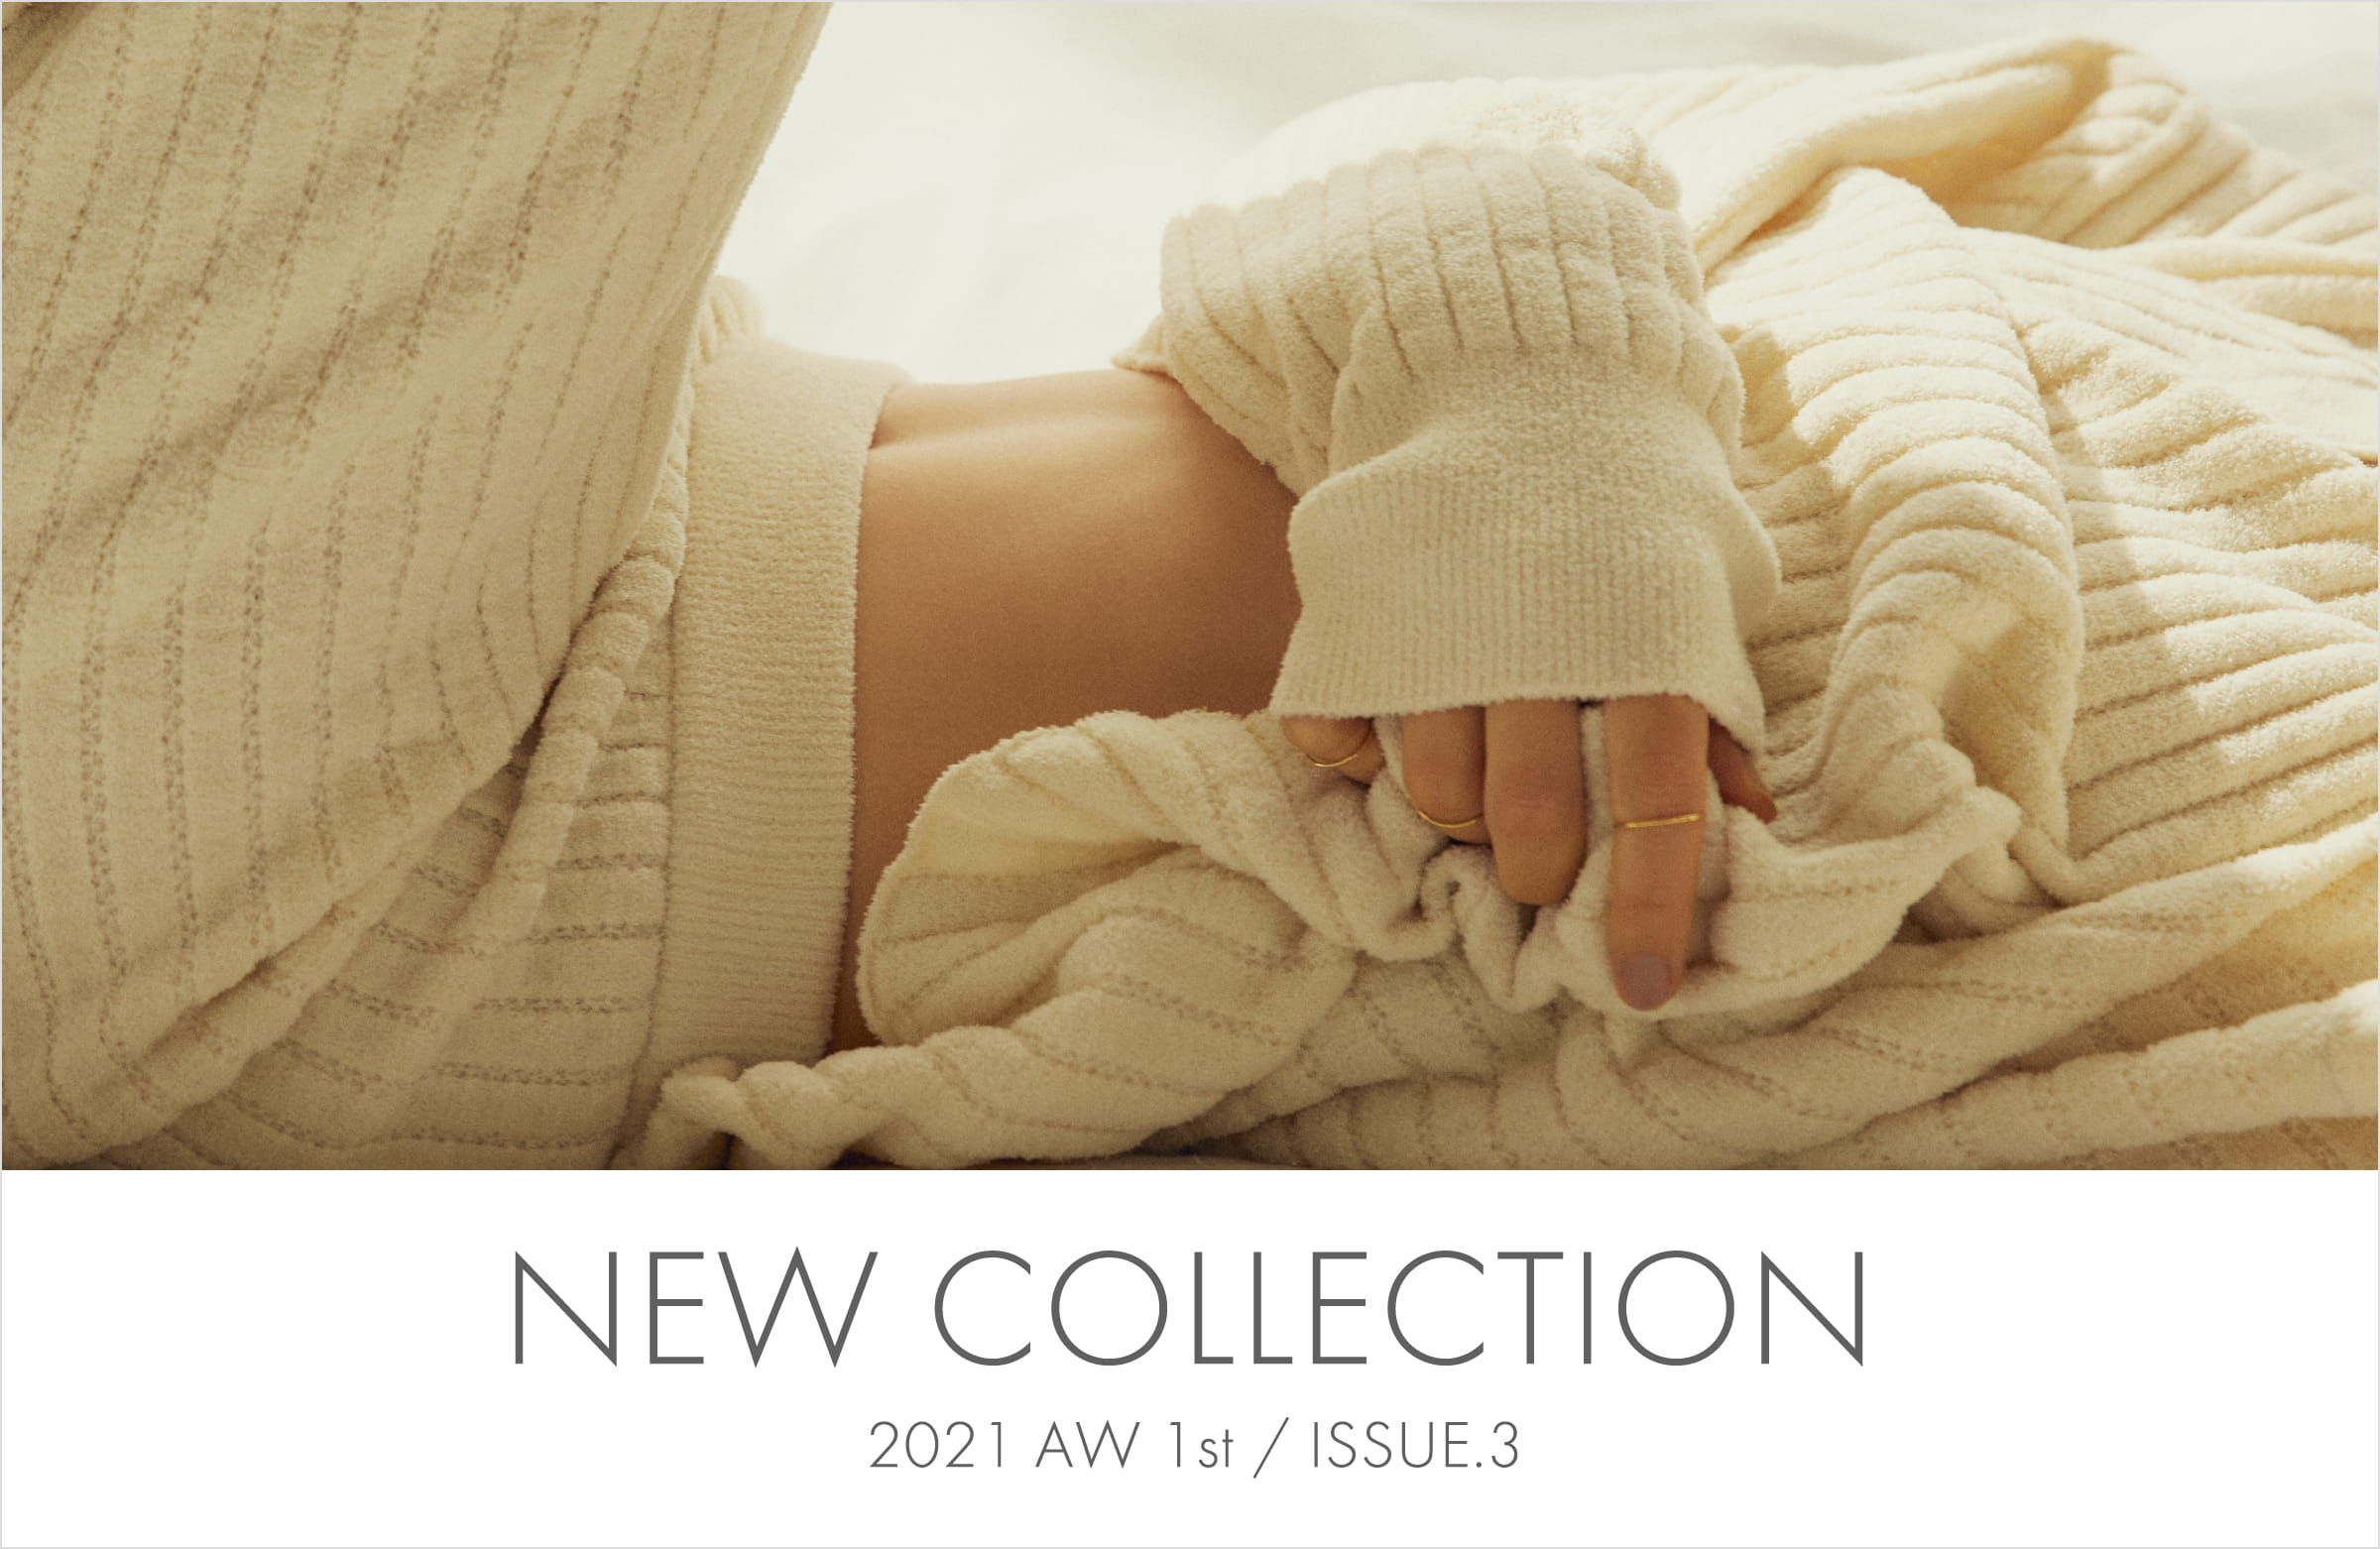 catalog ISSUE.3 / October Every day is a new day 日常の幸せを大切に